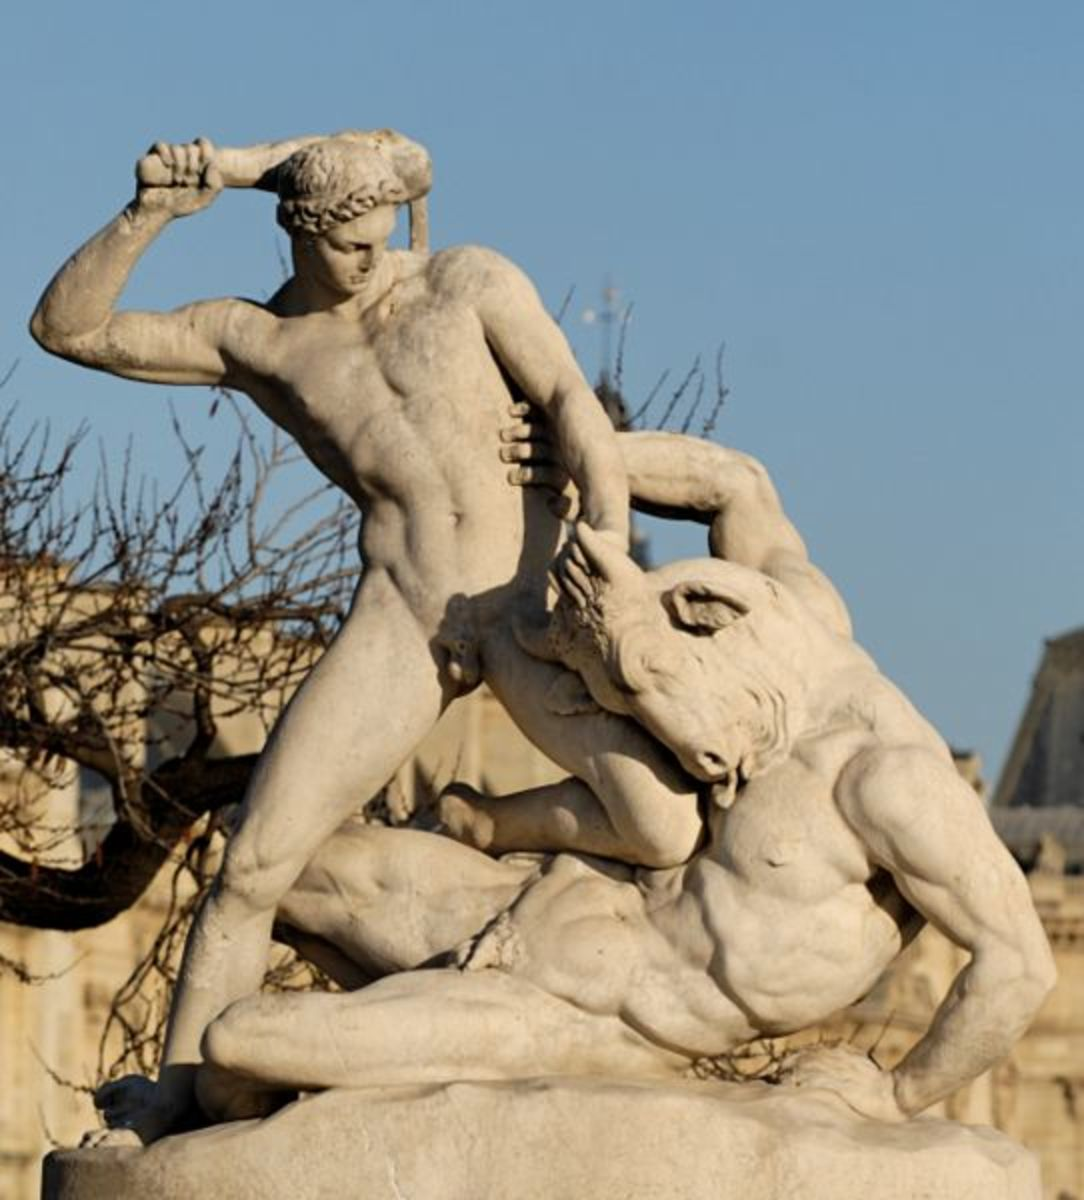 Theseus slaying the Minotaur, sculpture by Ramey, in the Tuileries Gardens, Paris.